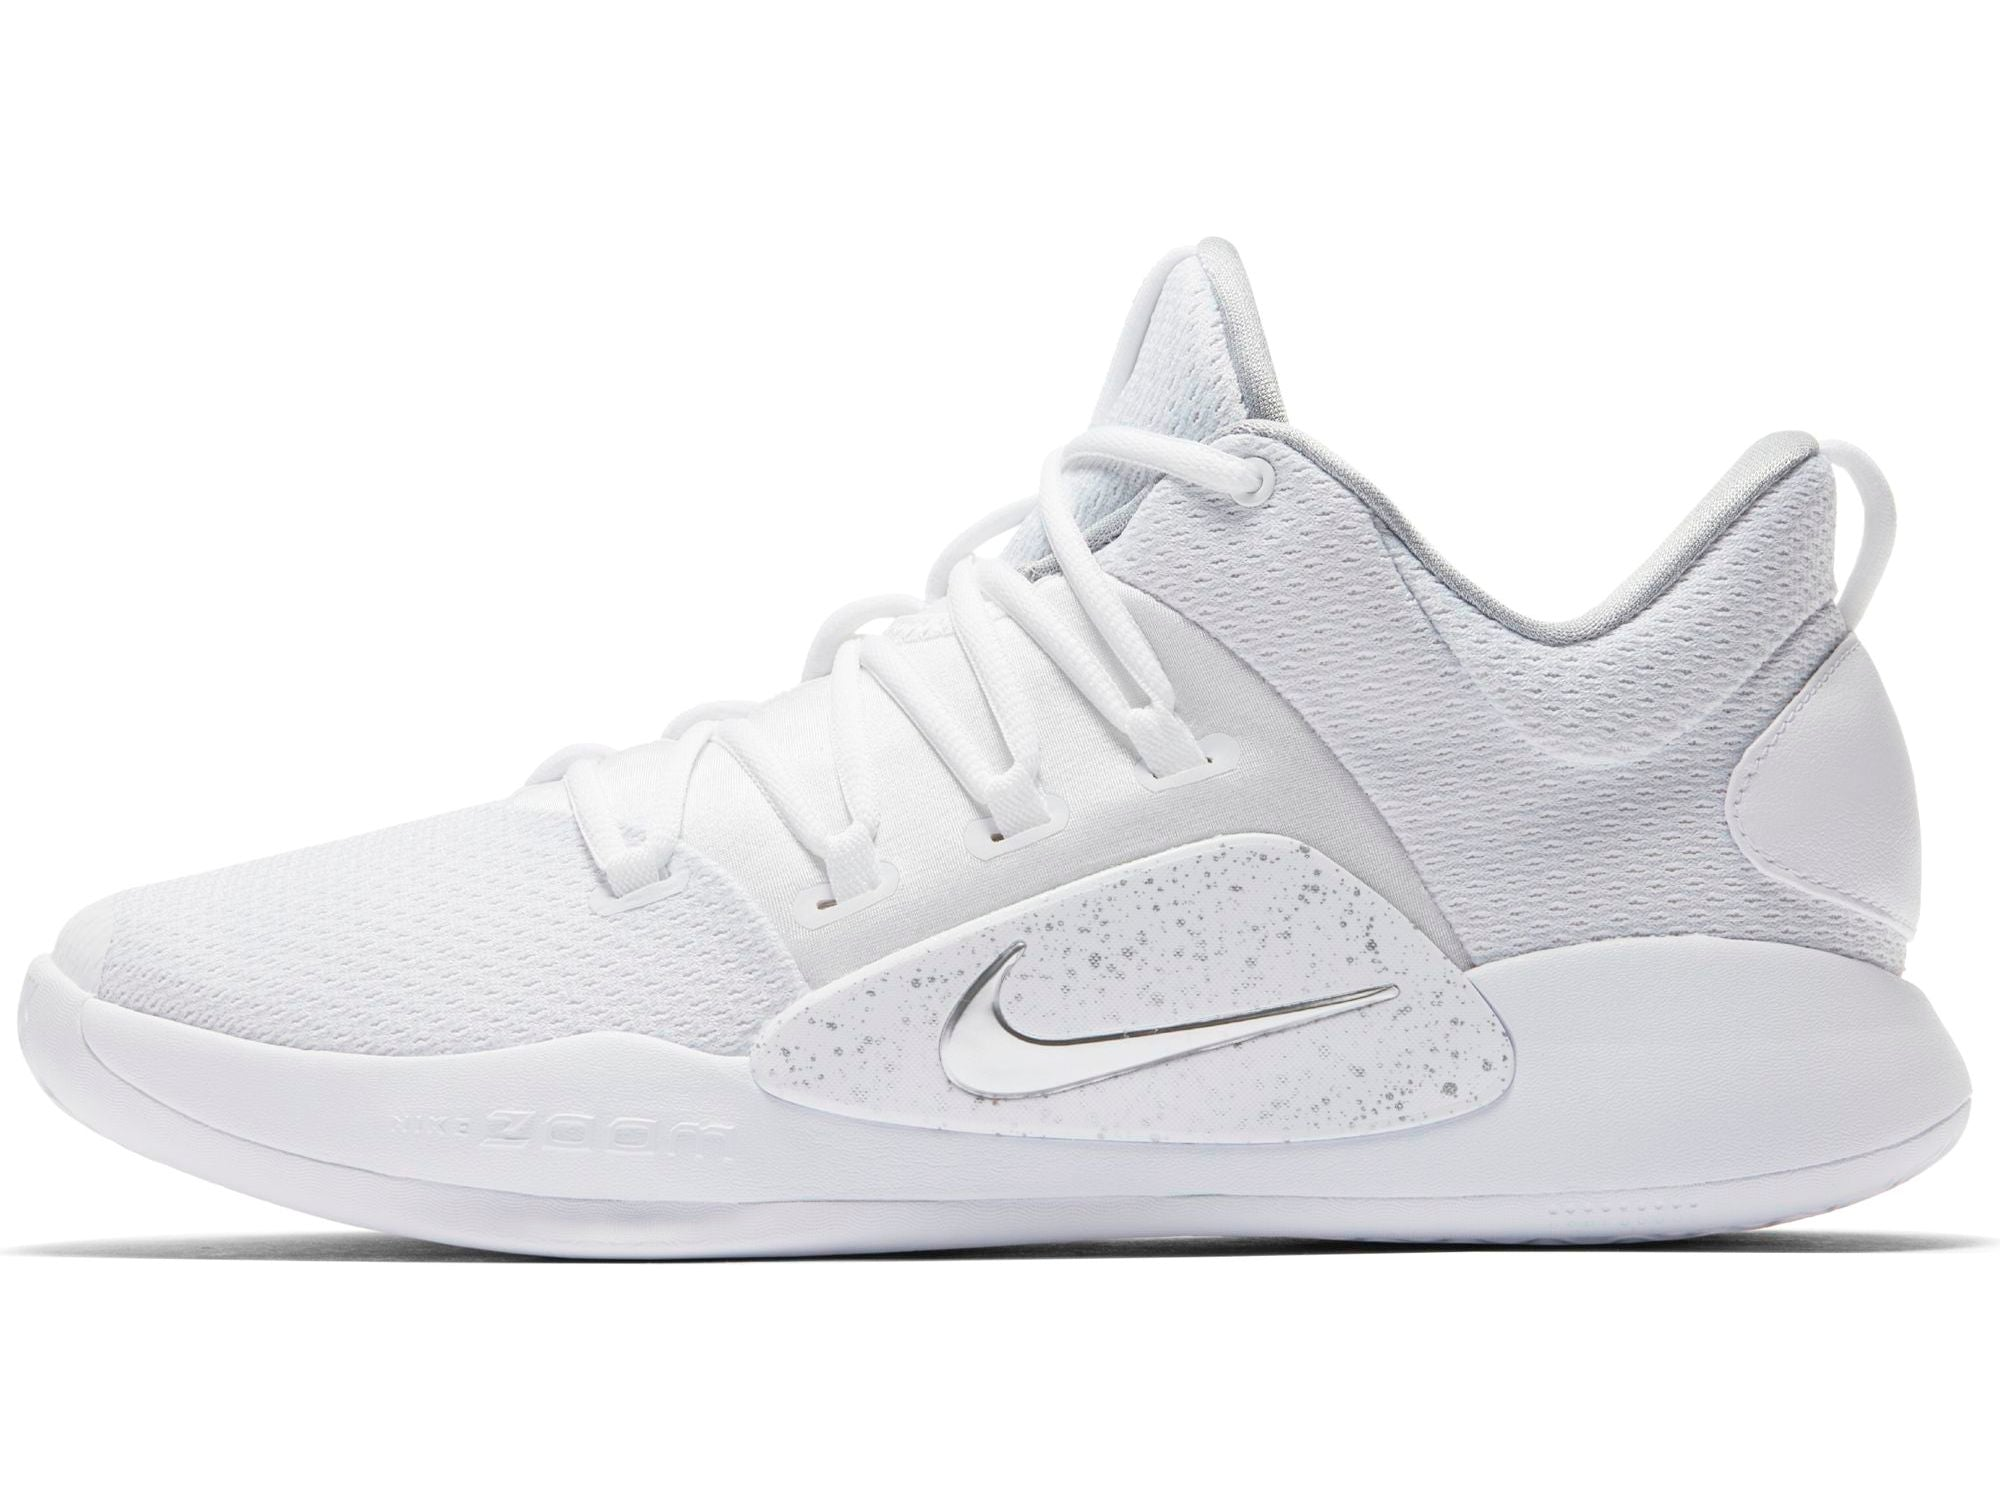 Nike Basketball Hyperdunk X Low Shoe - NK-AR0464-100